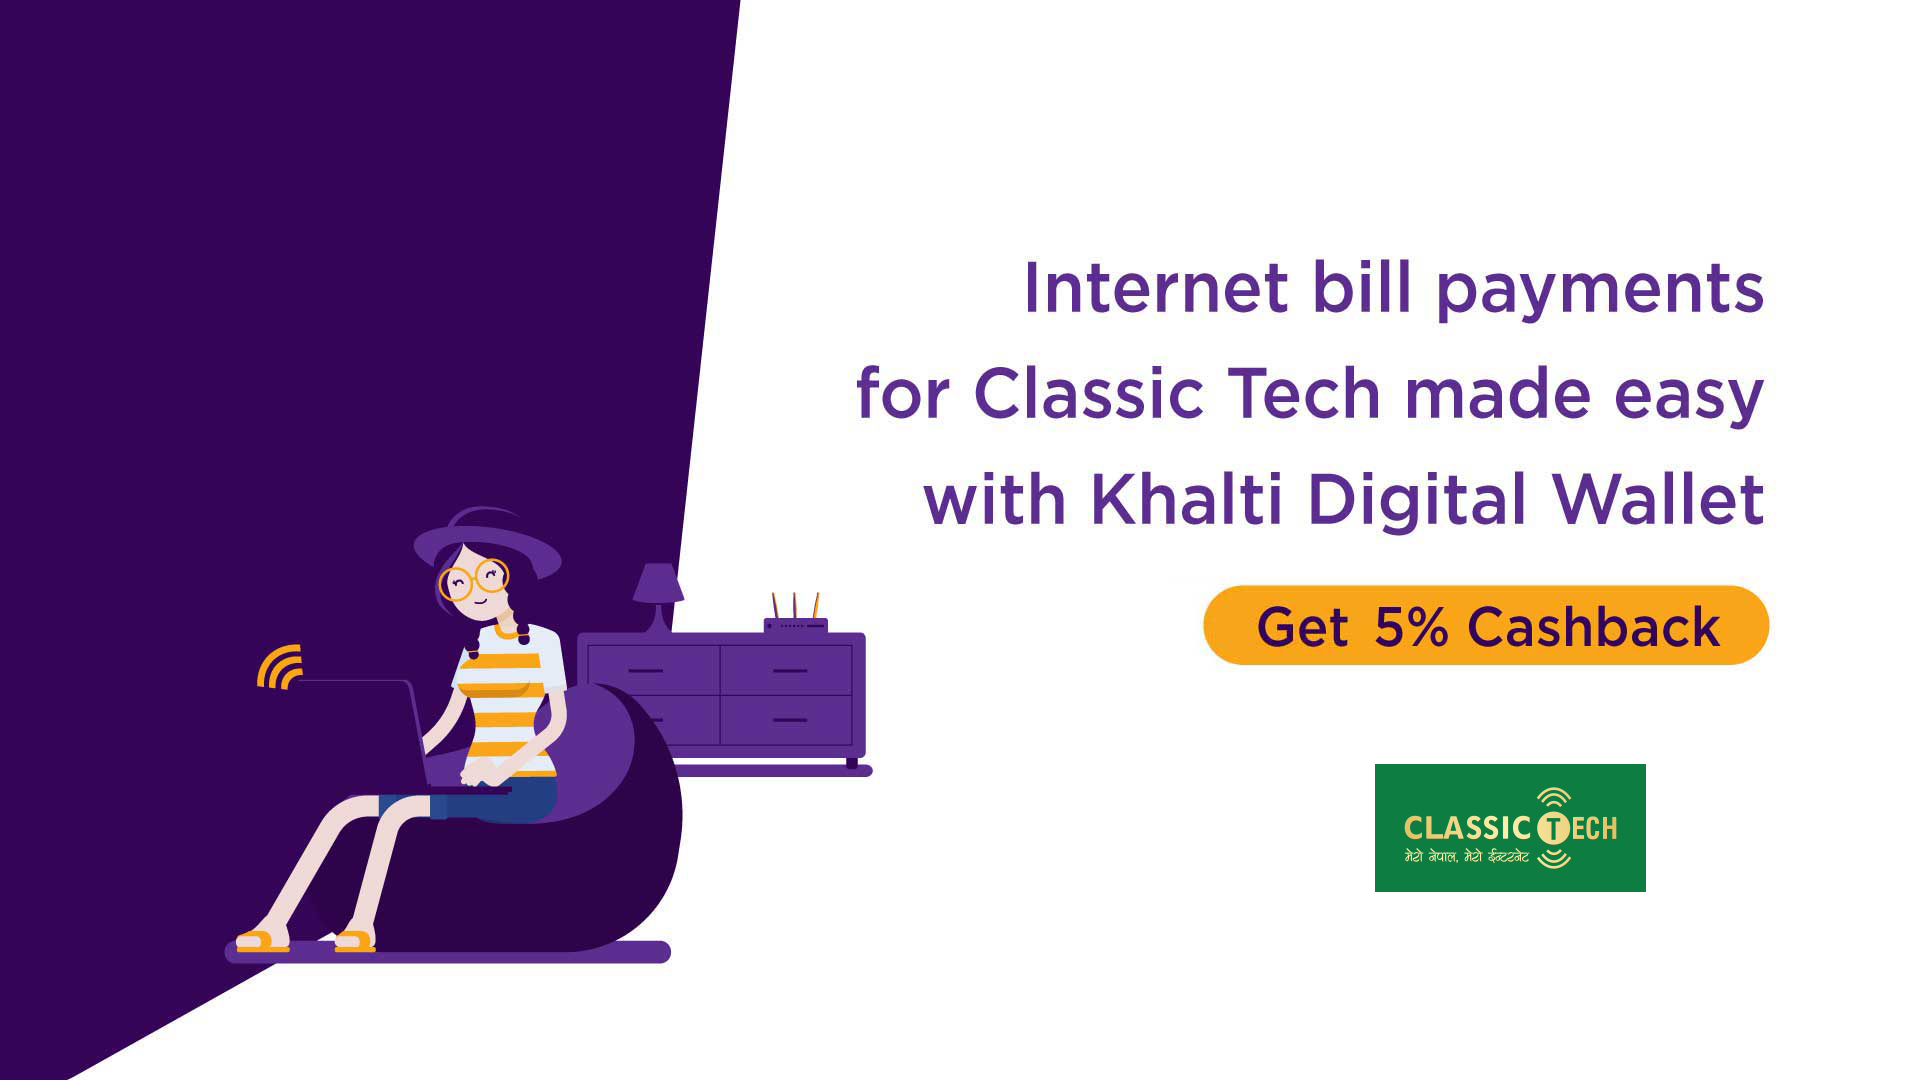 How to pay Classic Tech Internet Bill Online from Khalti?